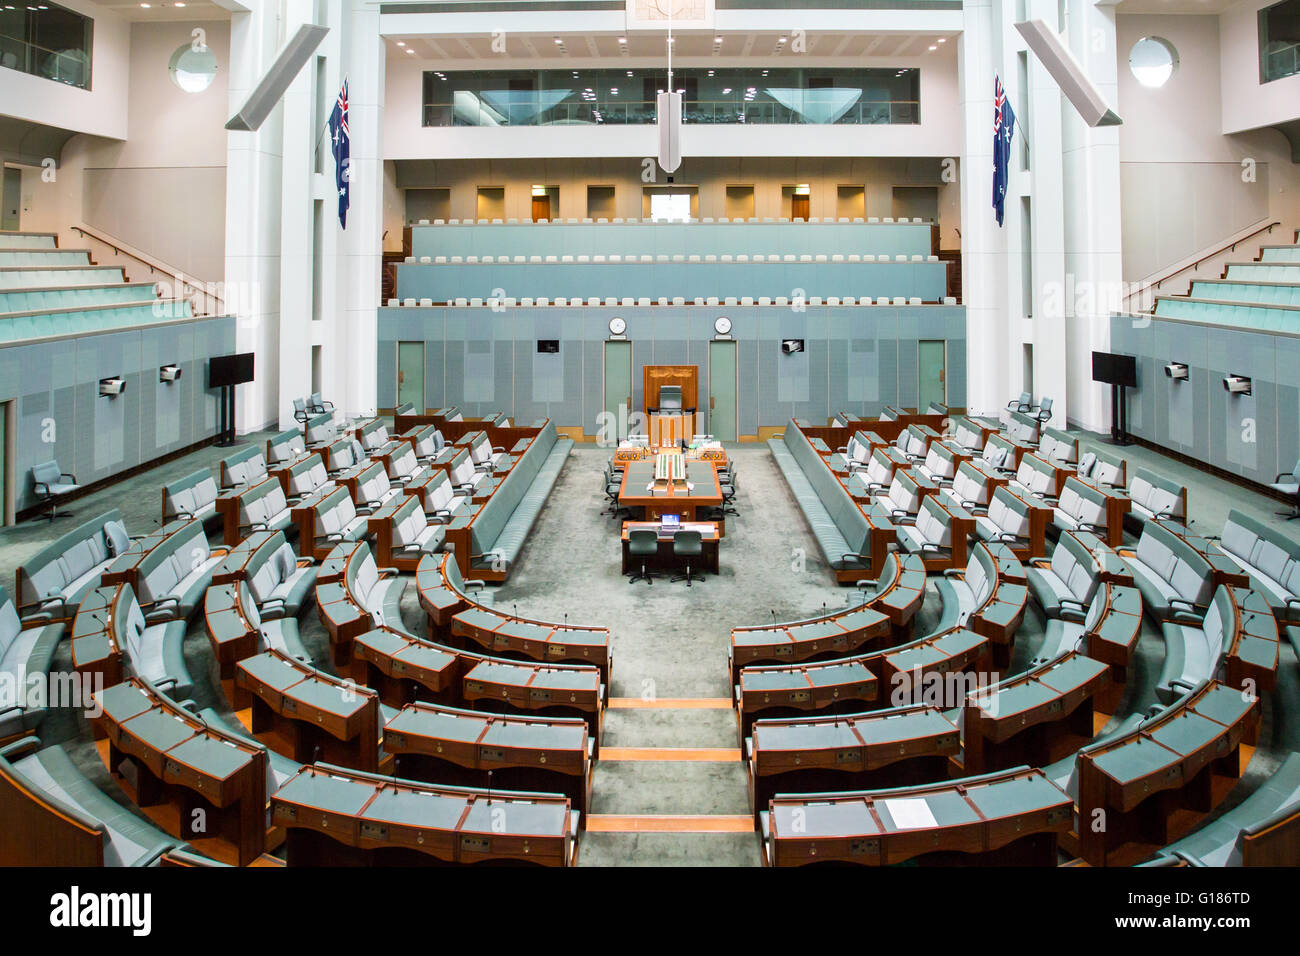 Canberra Australia Mar 25 2016 Interior View Of The